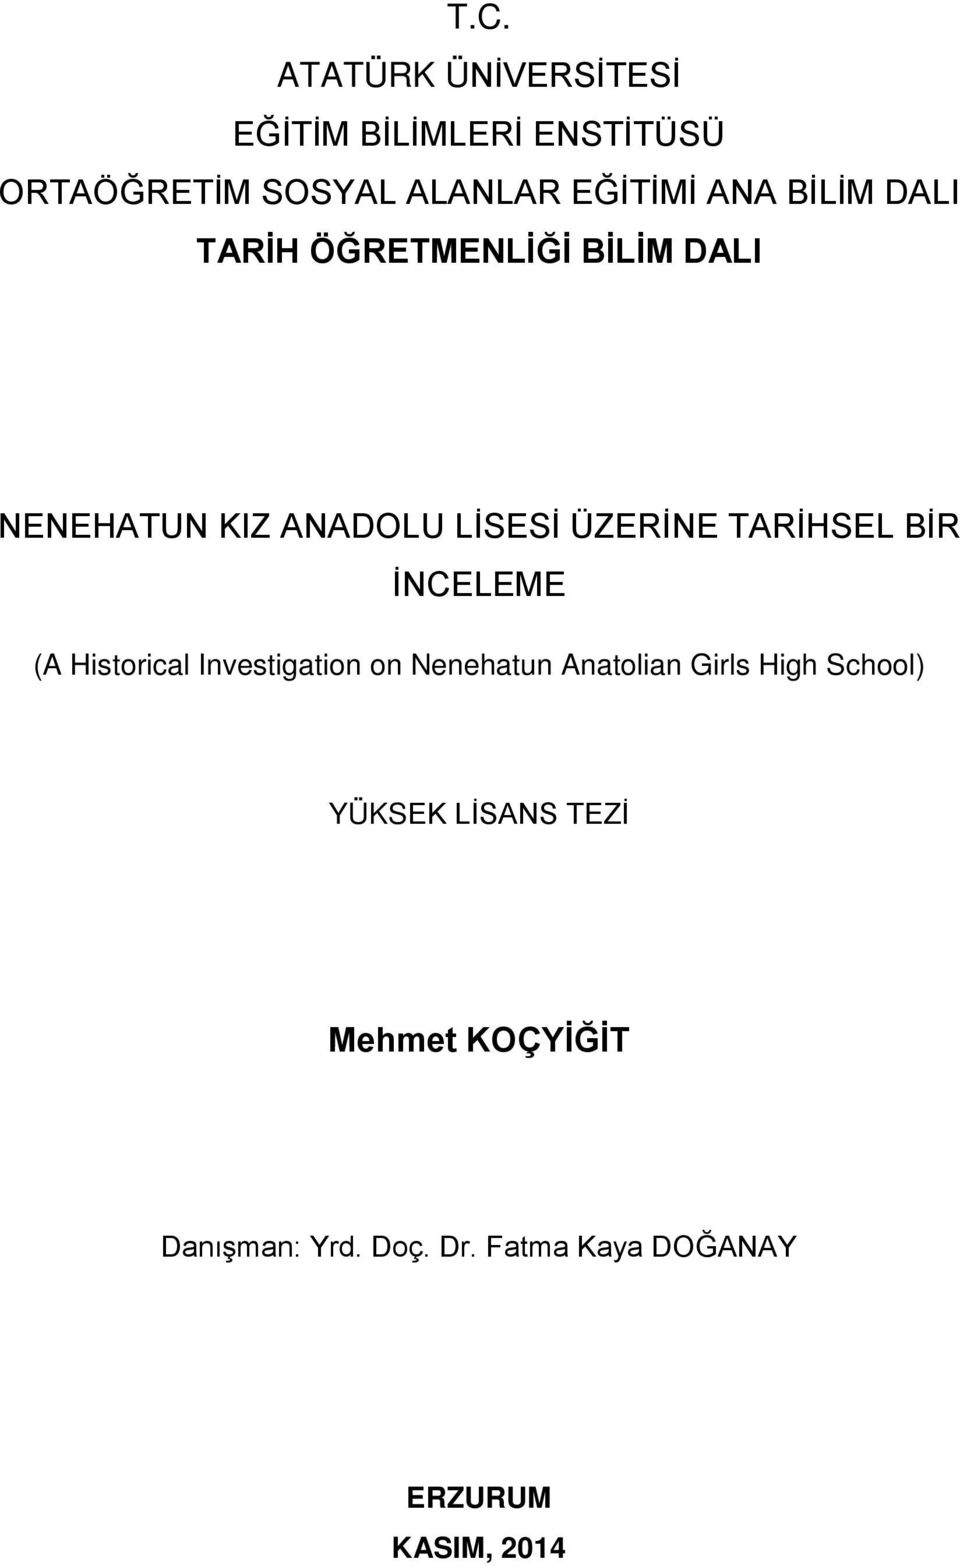 TARİHSEL BİR İNCELEME (A Historical Investigation on Nenehatun Anatolian Girls High